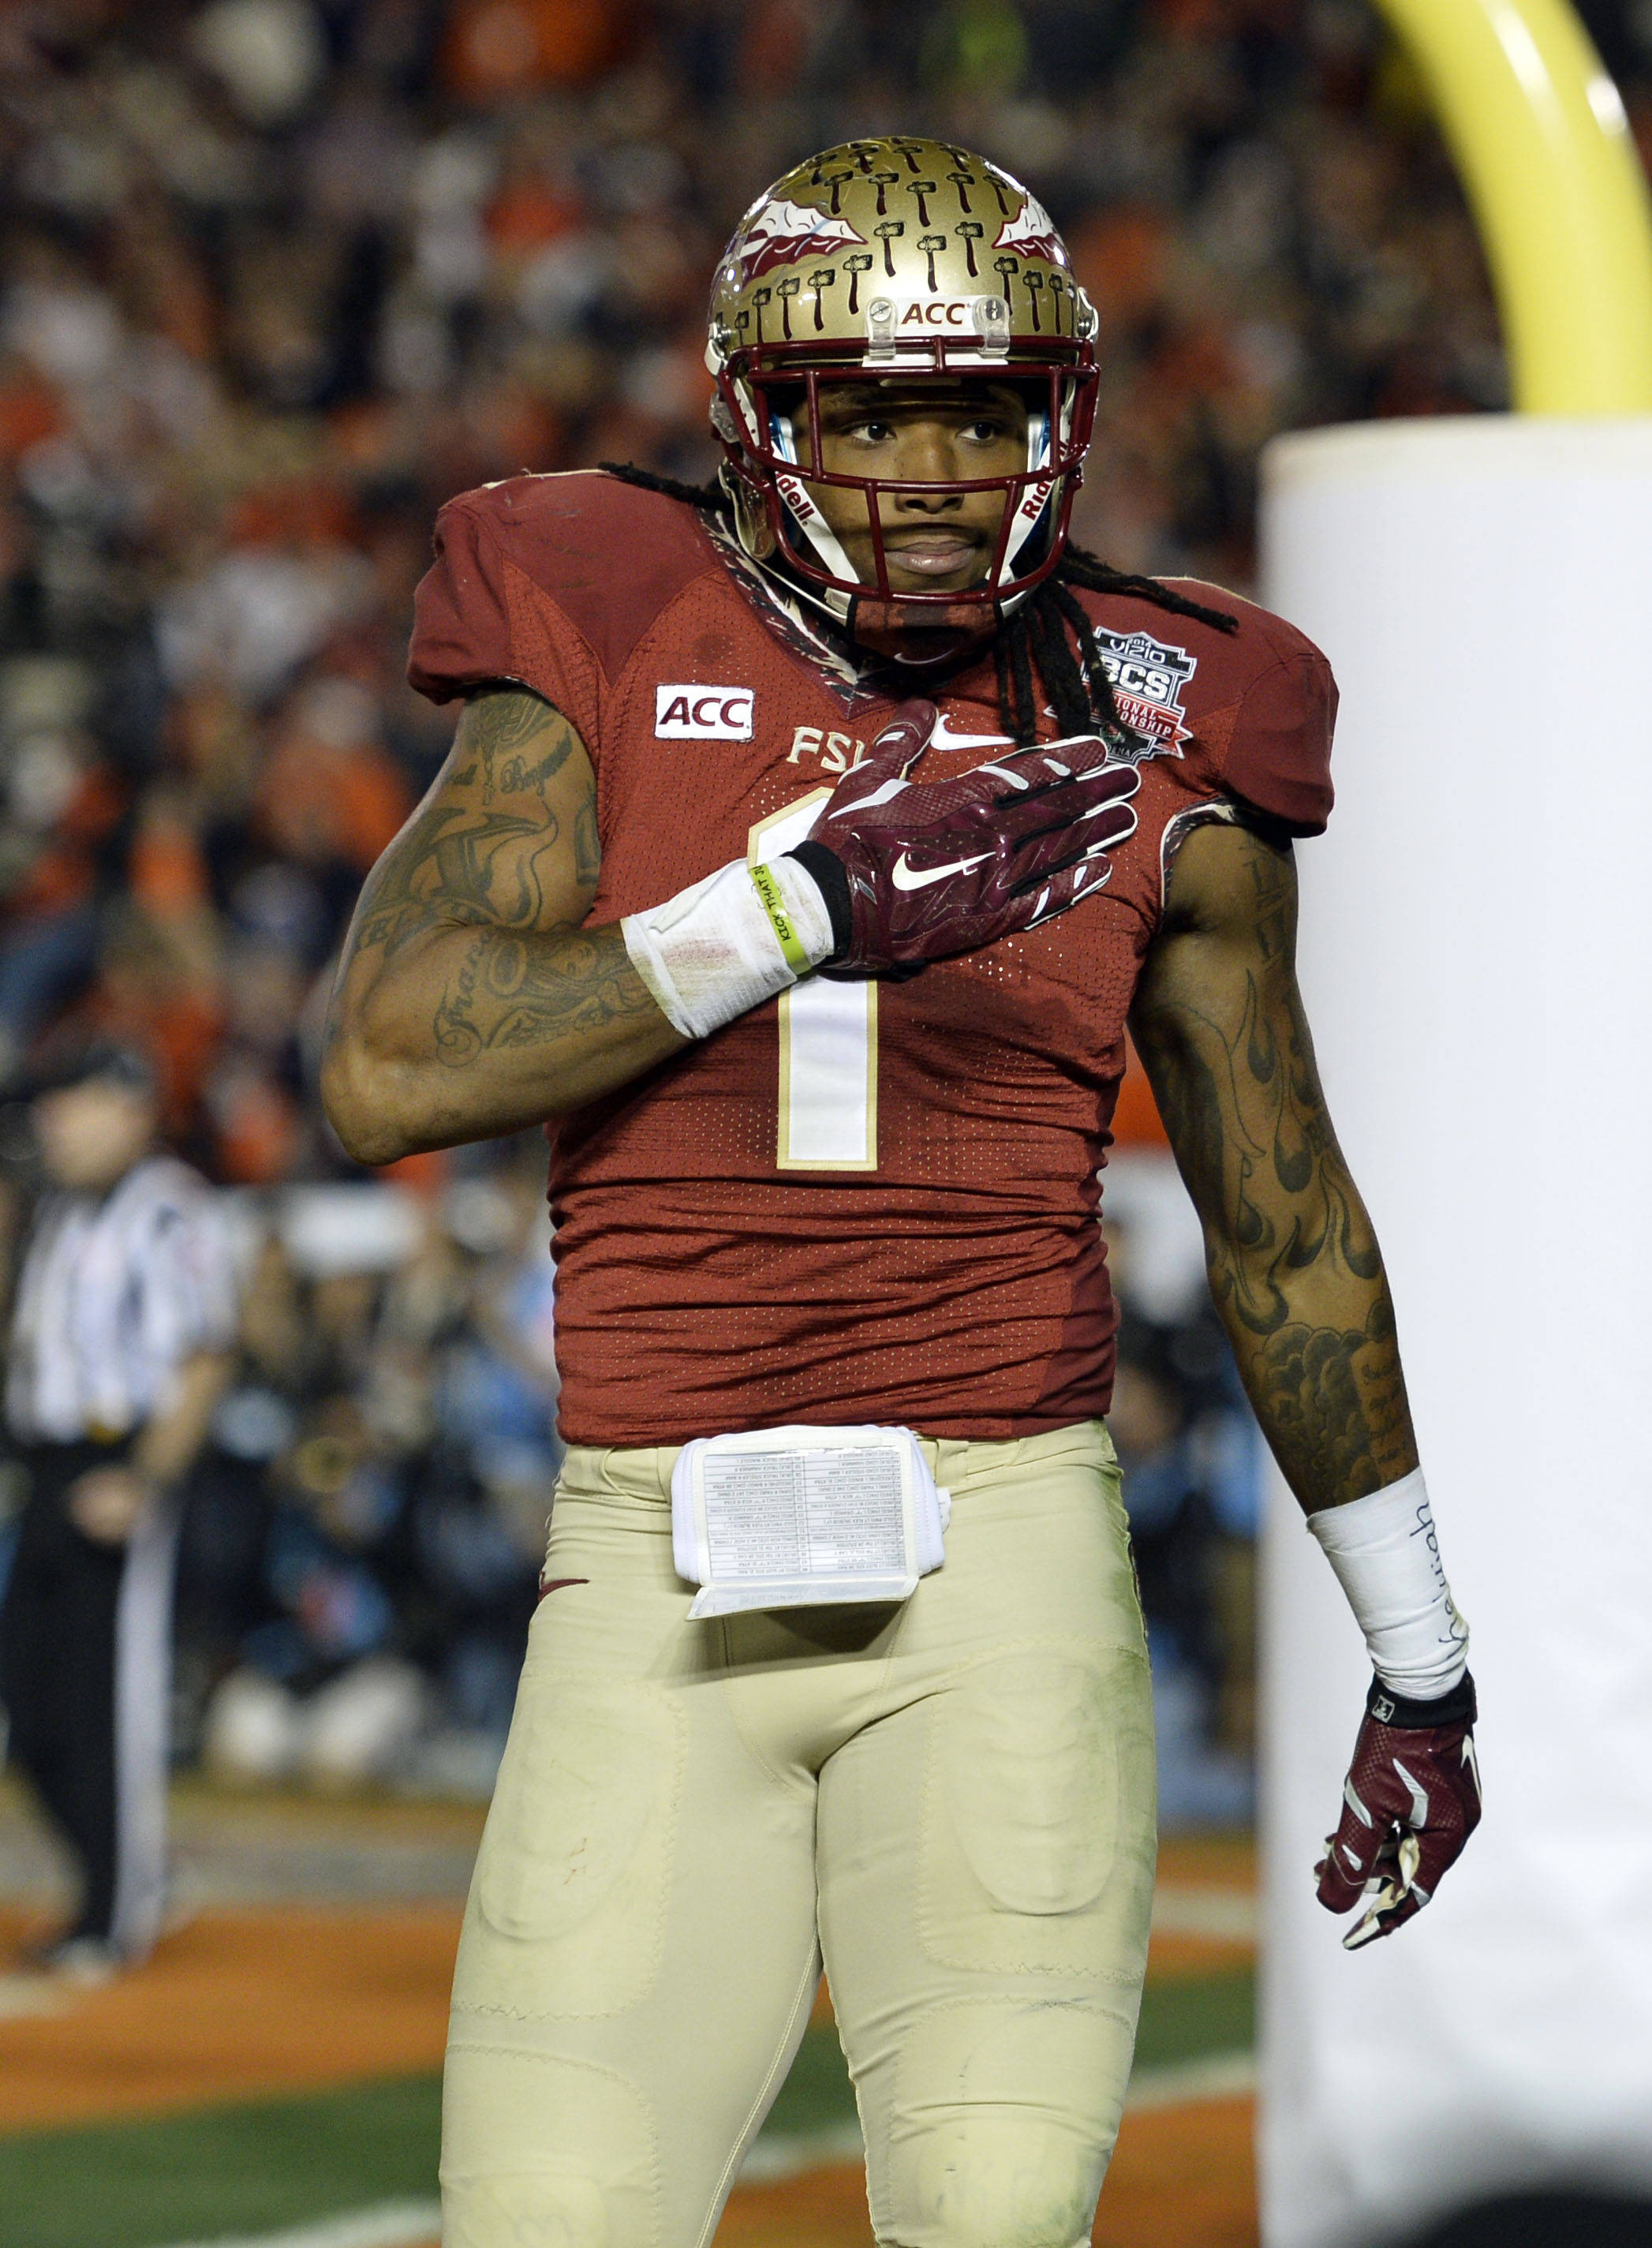 Jan 6, 2014; Pasadena, CA, USA; Florida State Seminoles wide receiver Kelvin Benjamin (1) celebrates after scoring a touchdown against the Auburn Tigers during the second half of the 2014 BCS National Championship game at the Rose Bowl.  Mandatory Credit: Robert Hanashiro-USA TODAY Sports